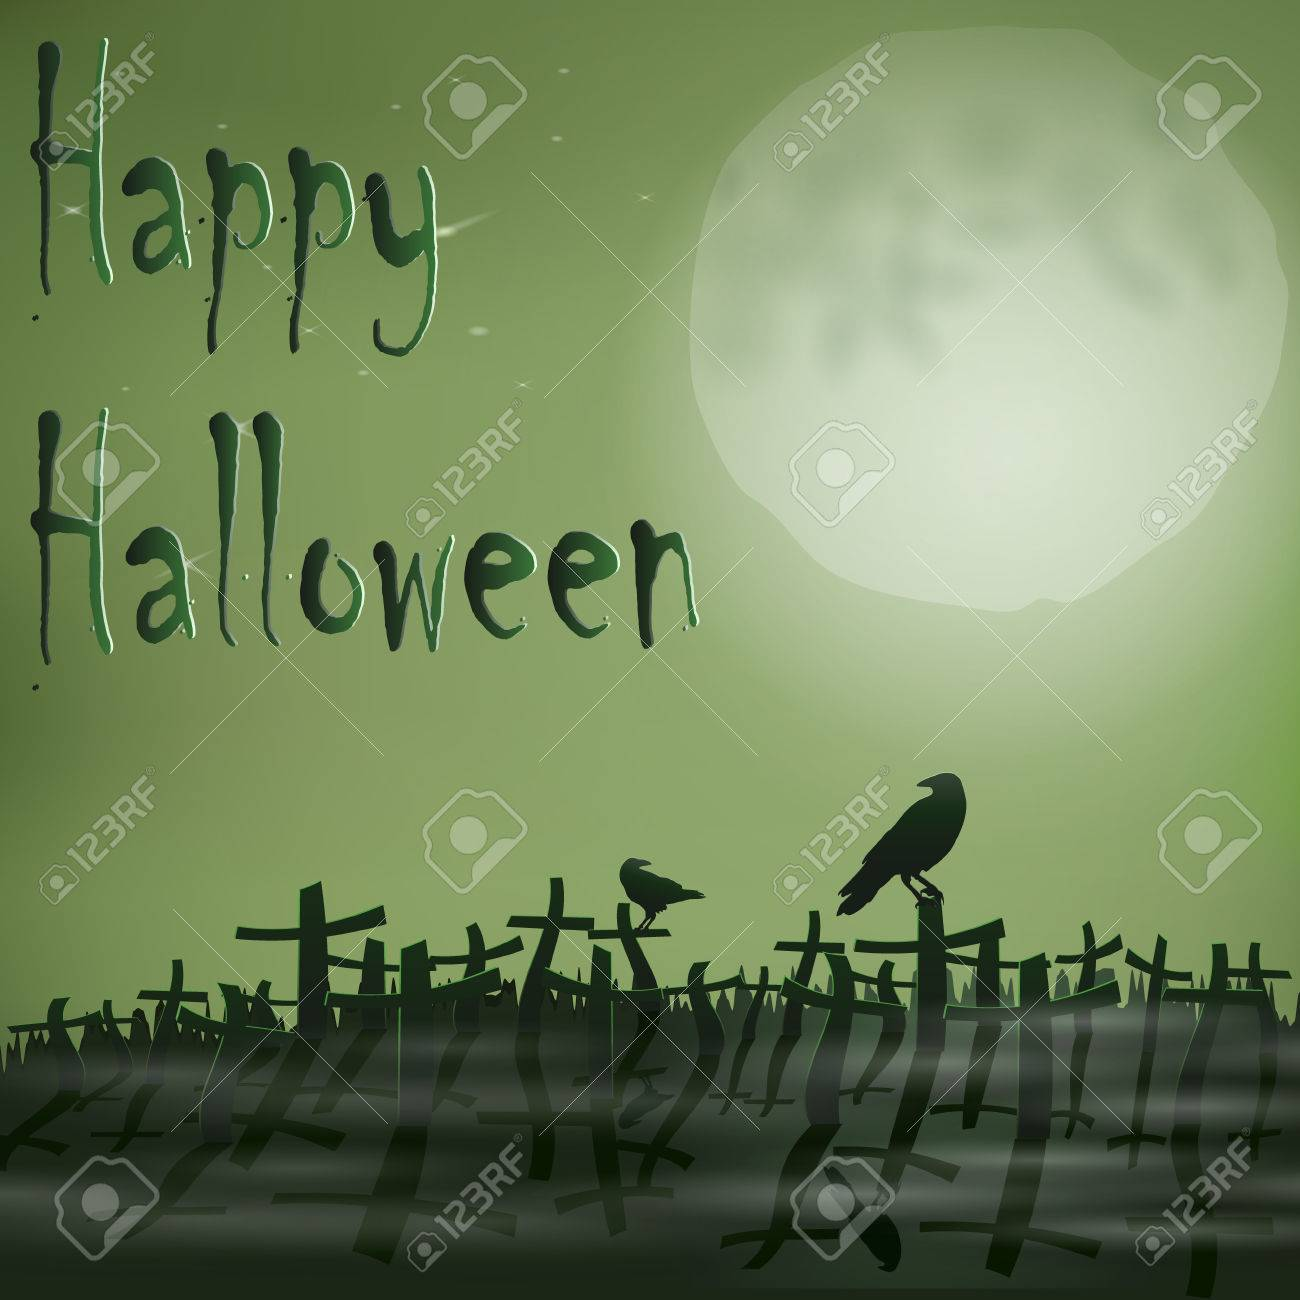 halloween cemetery moon ravens royalty free cliparts, vectors, and